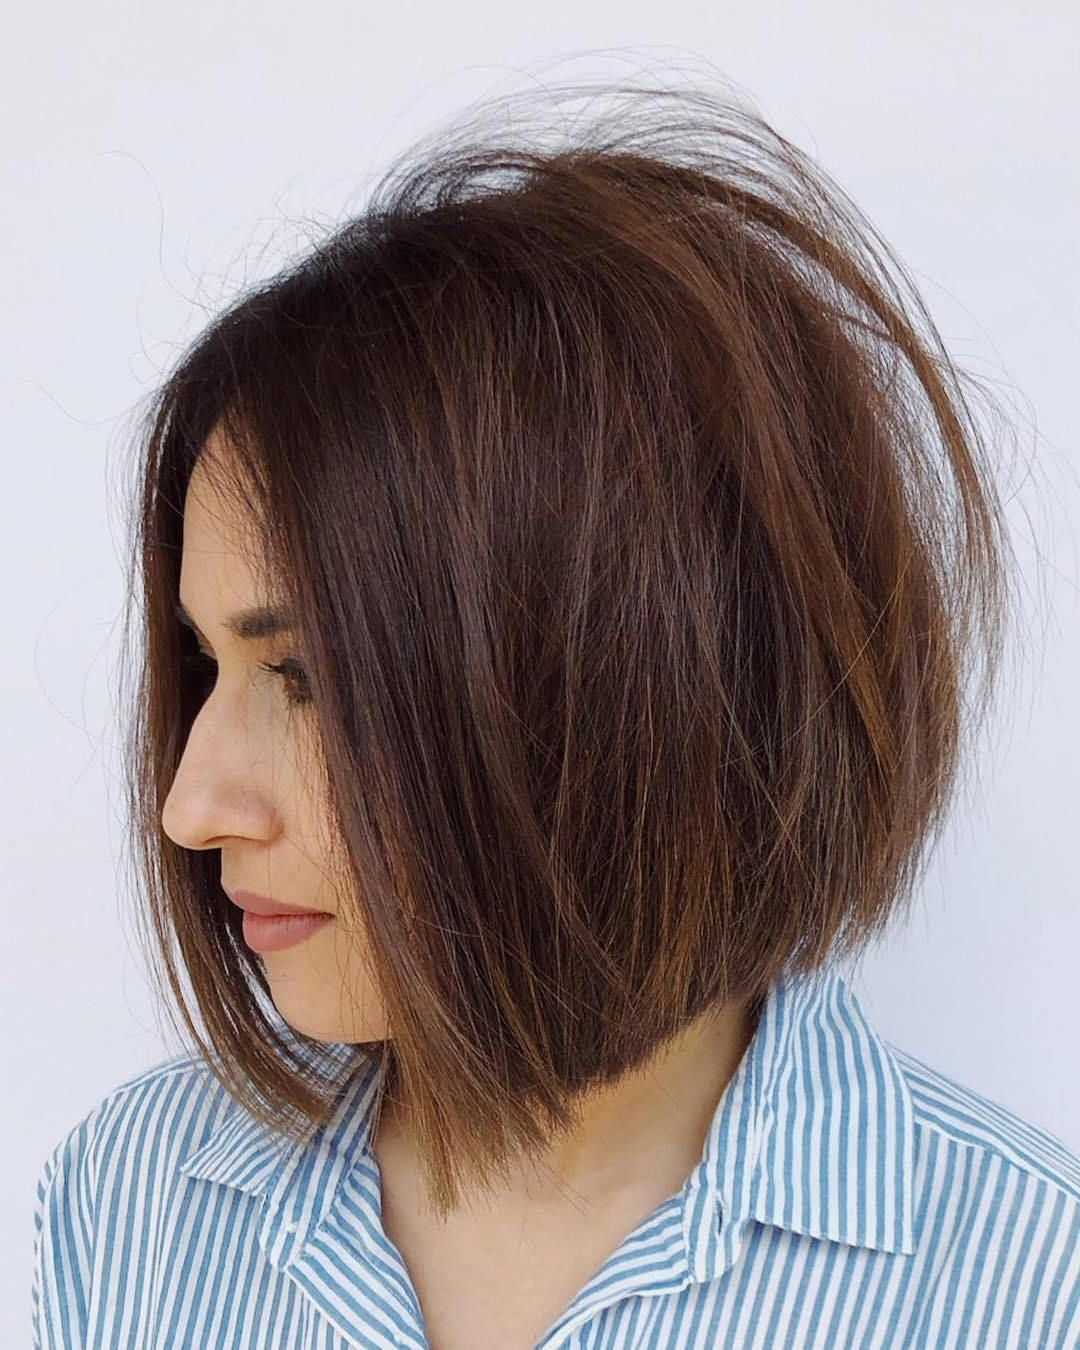 Shaggy Chestnut Brown Bob For Straight Hair In 2019 Within Current Chestnut Brown Choppy Lob Hairstyles (View 17 of 20)